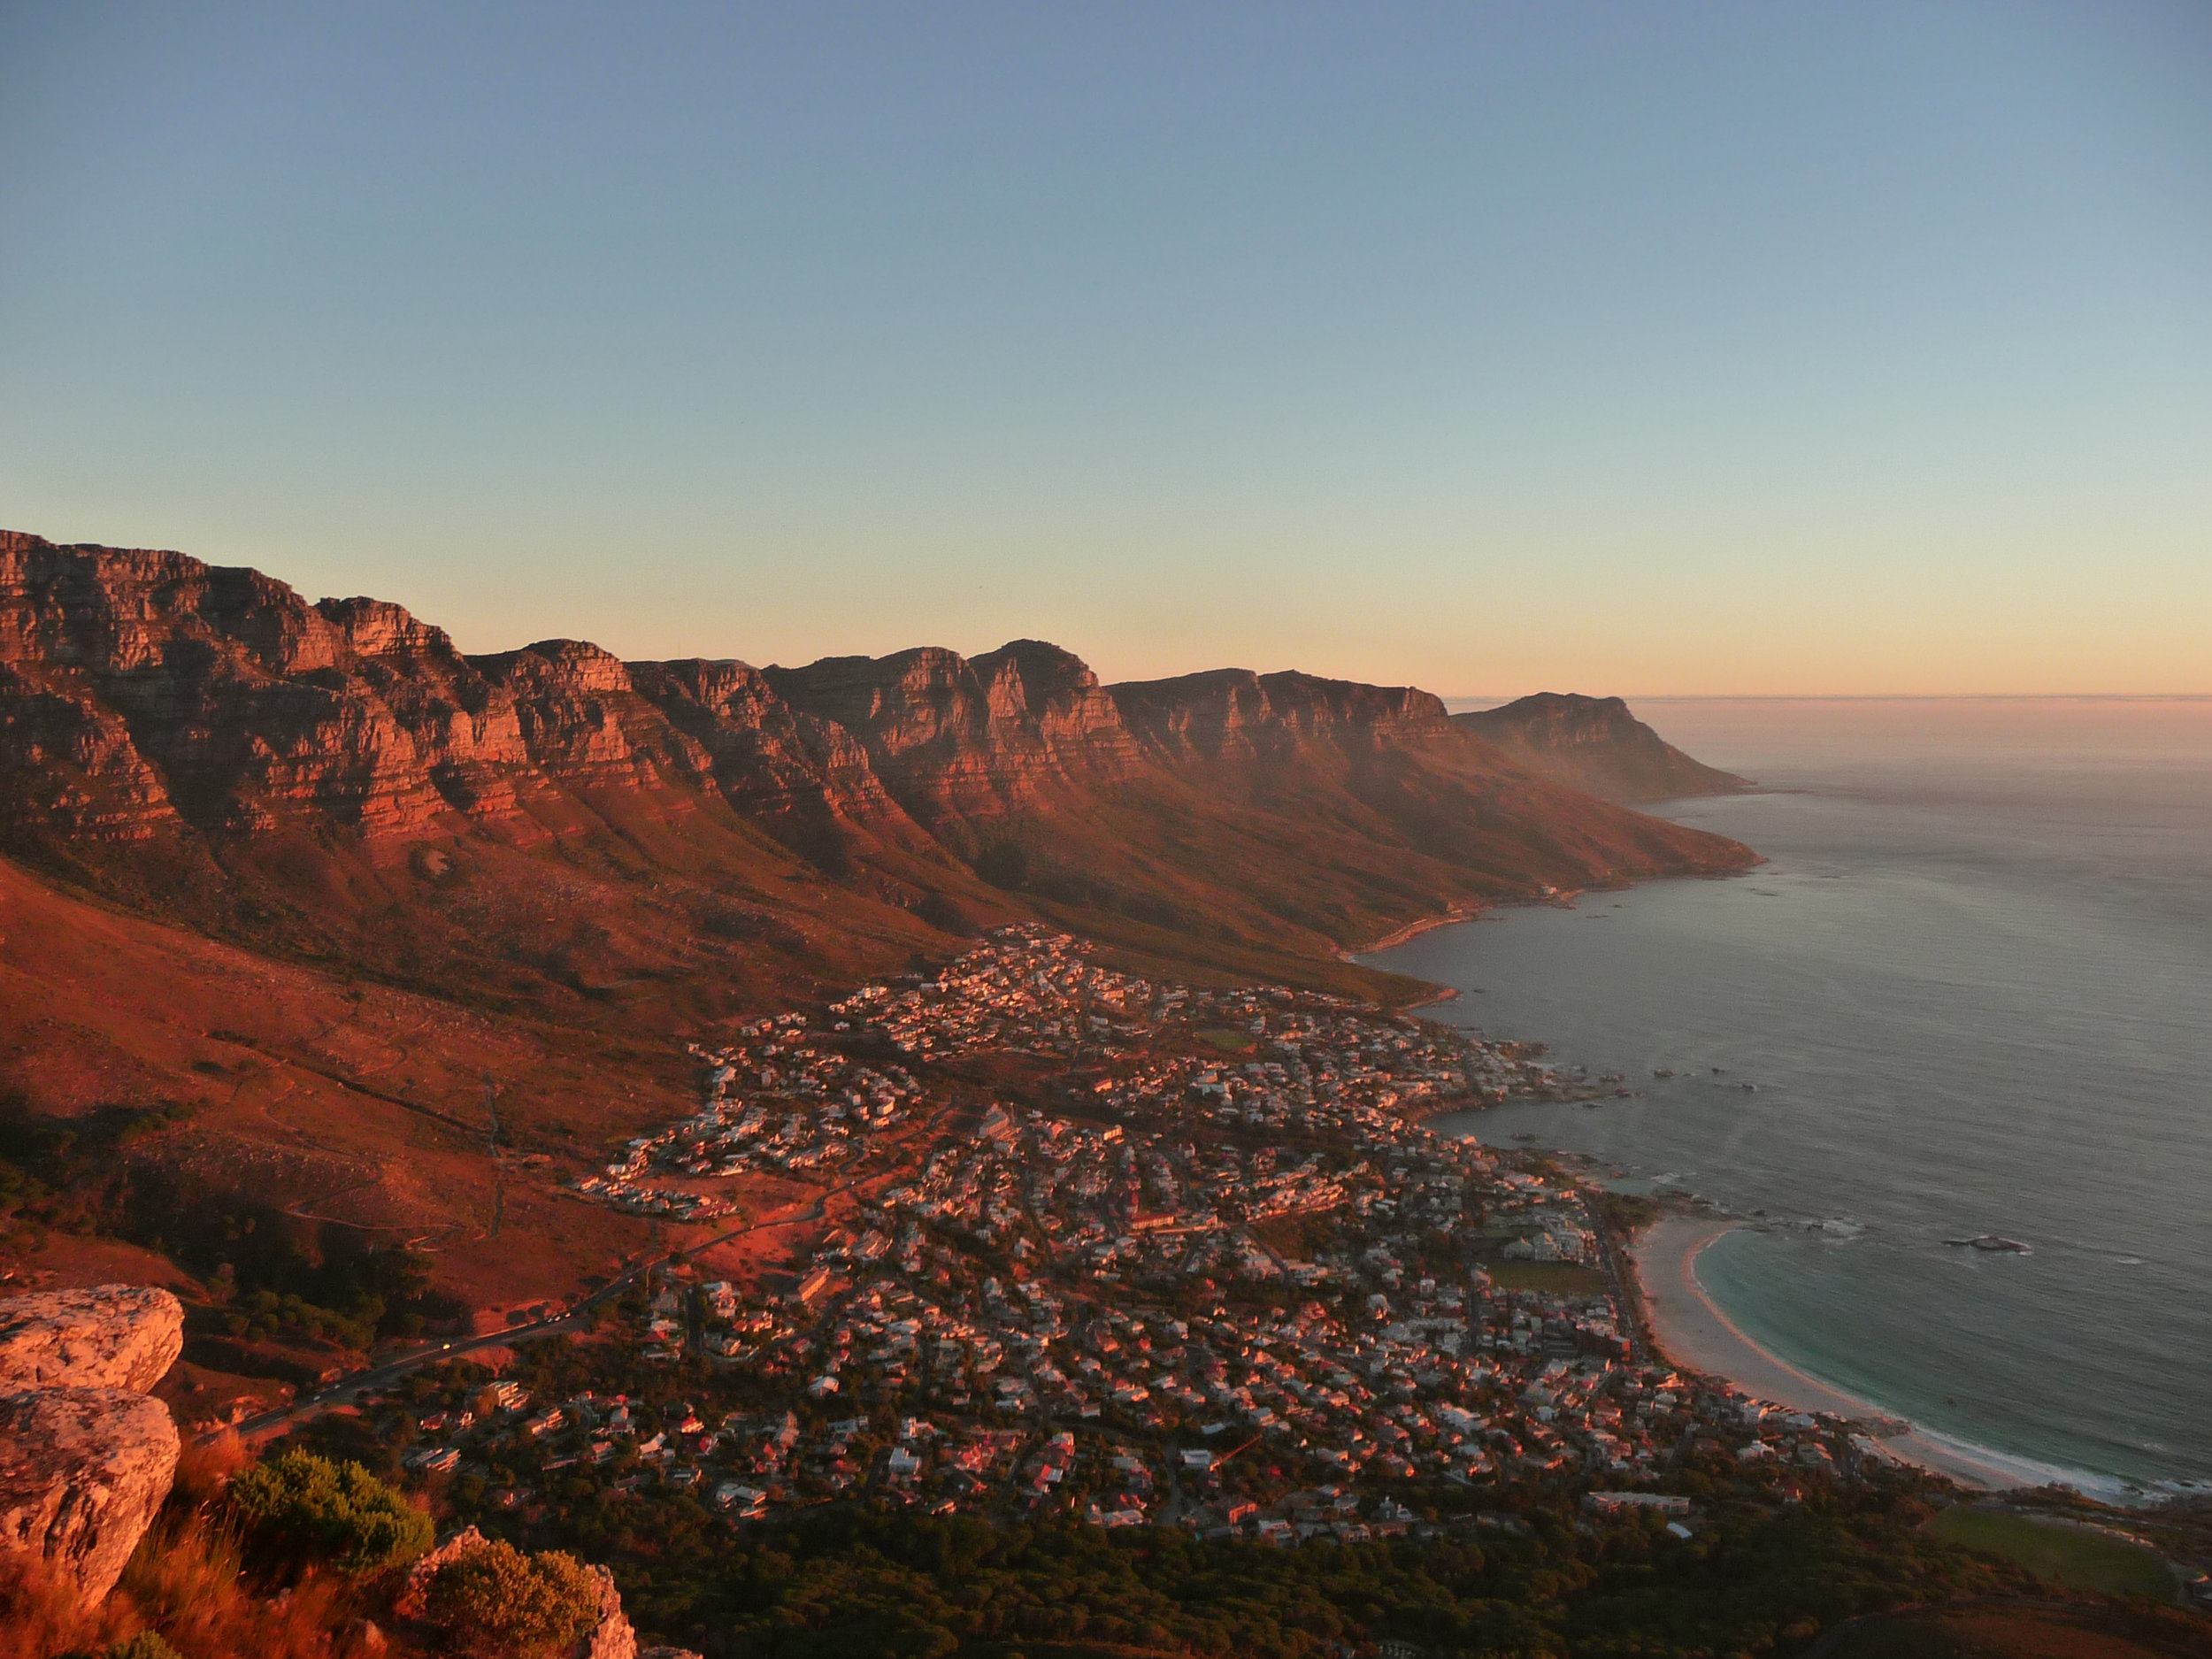 """"""" The Twelve Apostles """", Cape Town, South Africa"""